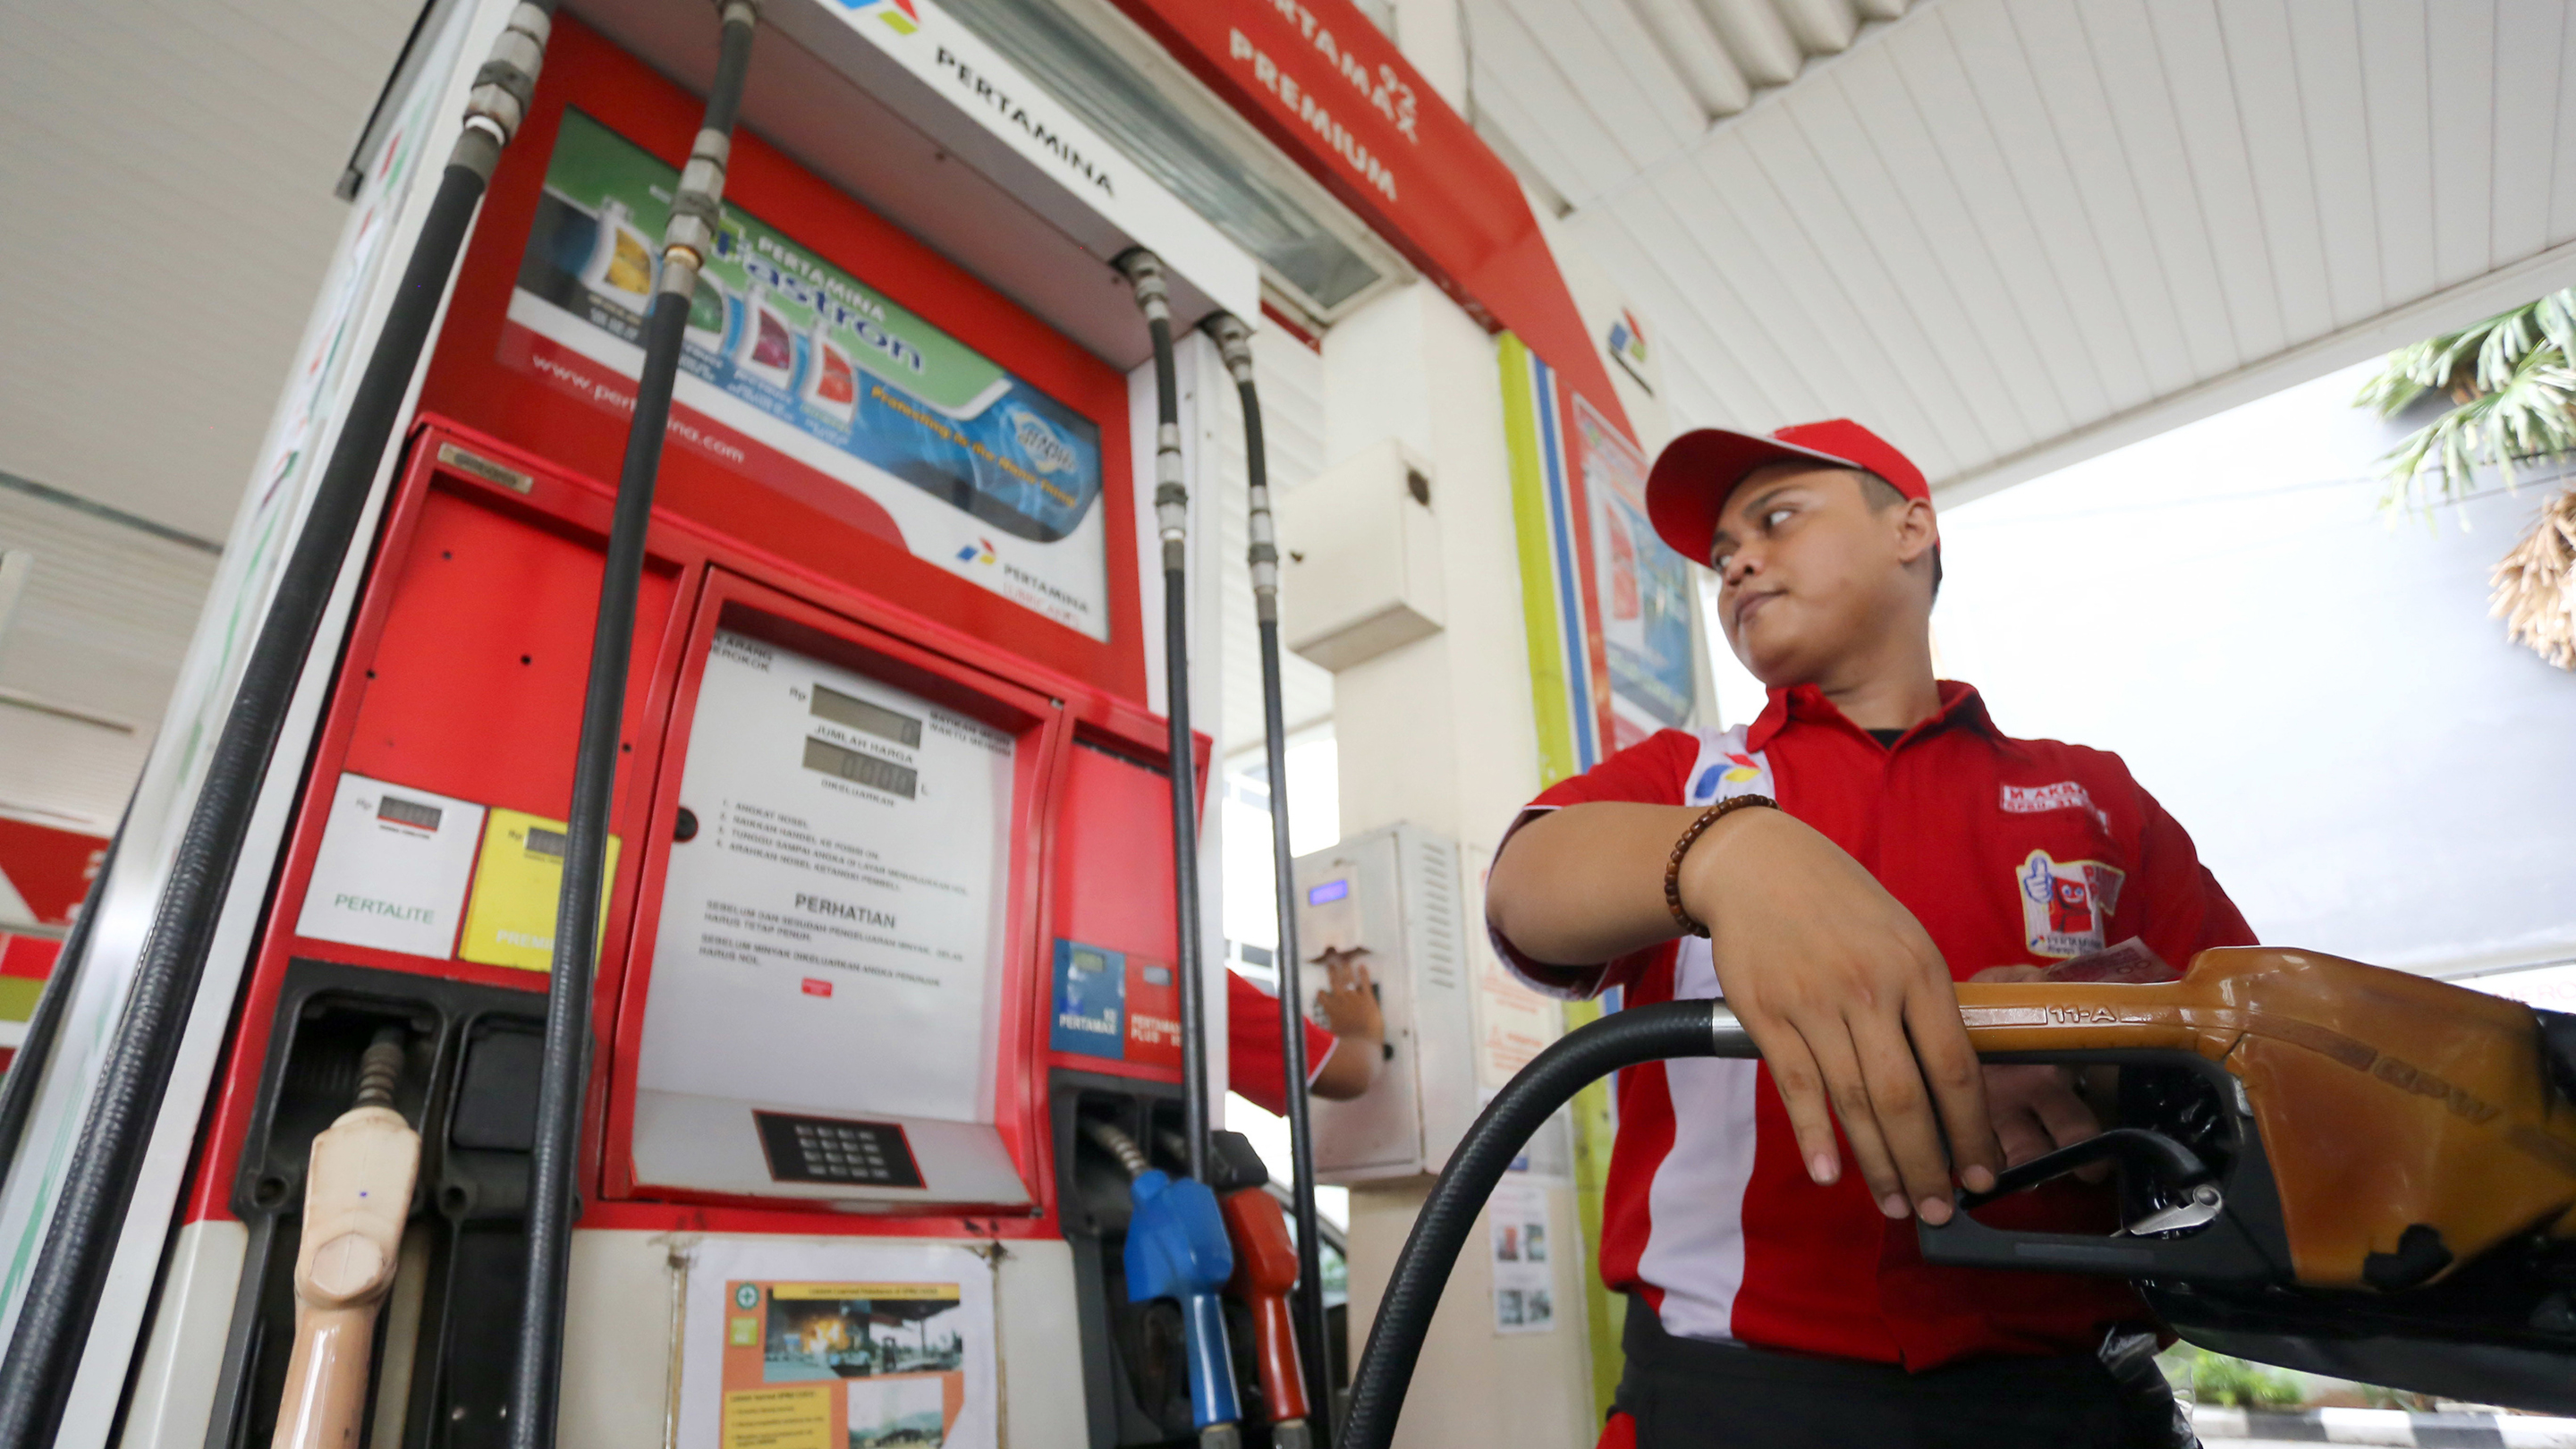 A gasoline boy fuels up a vehicle. Towards the Indonesian